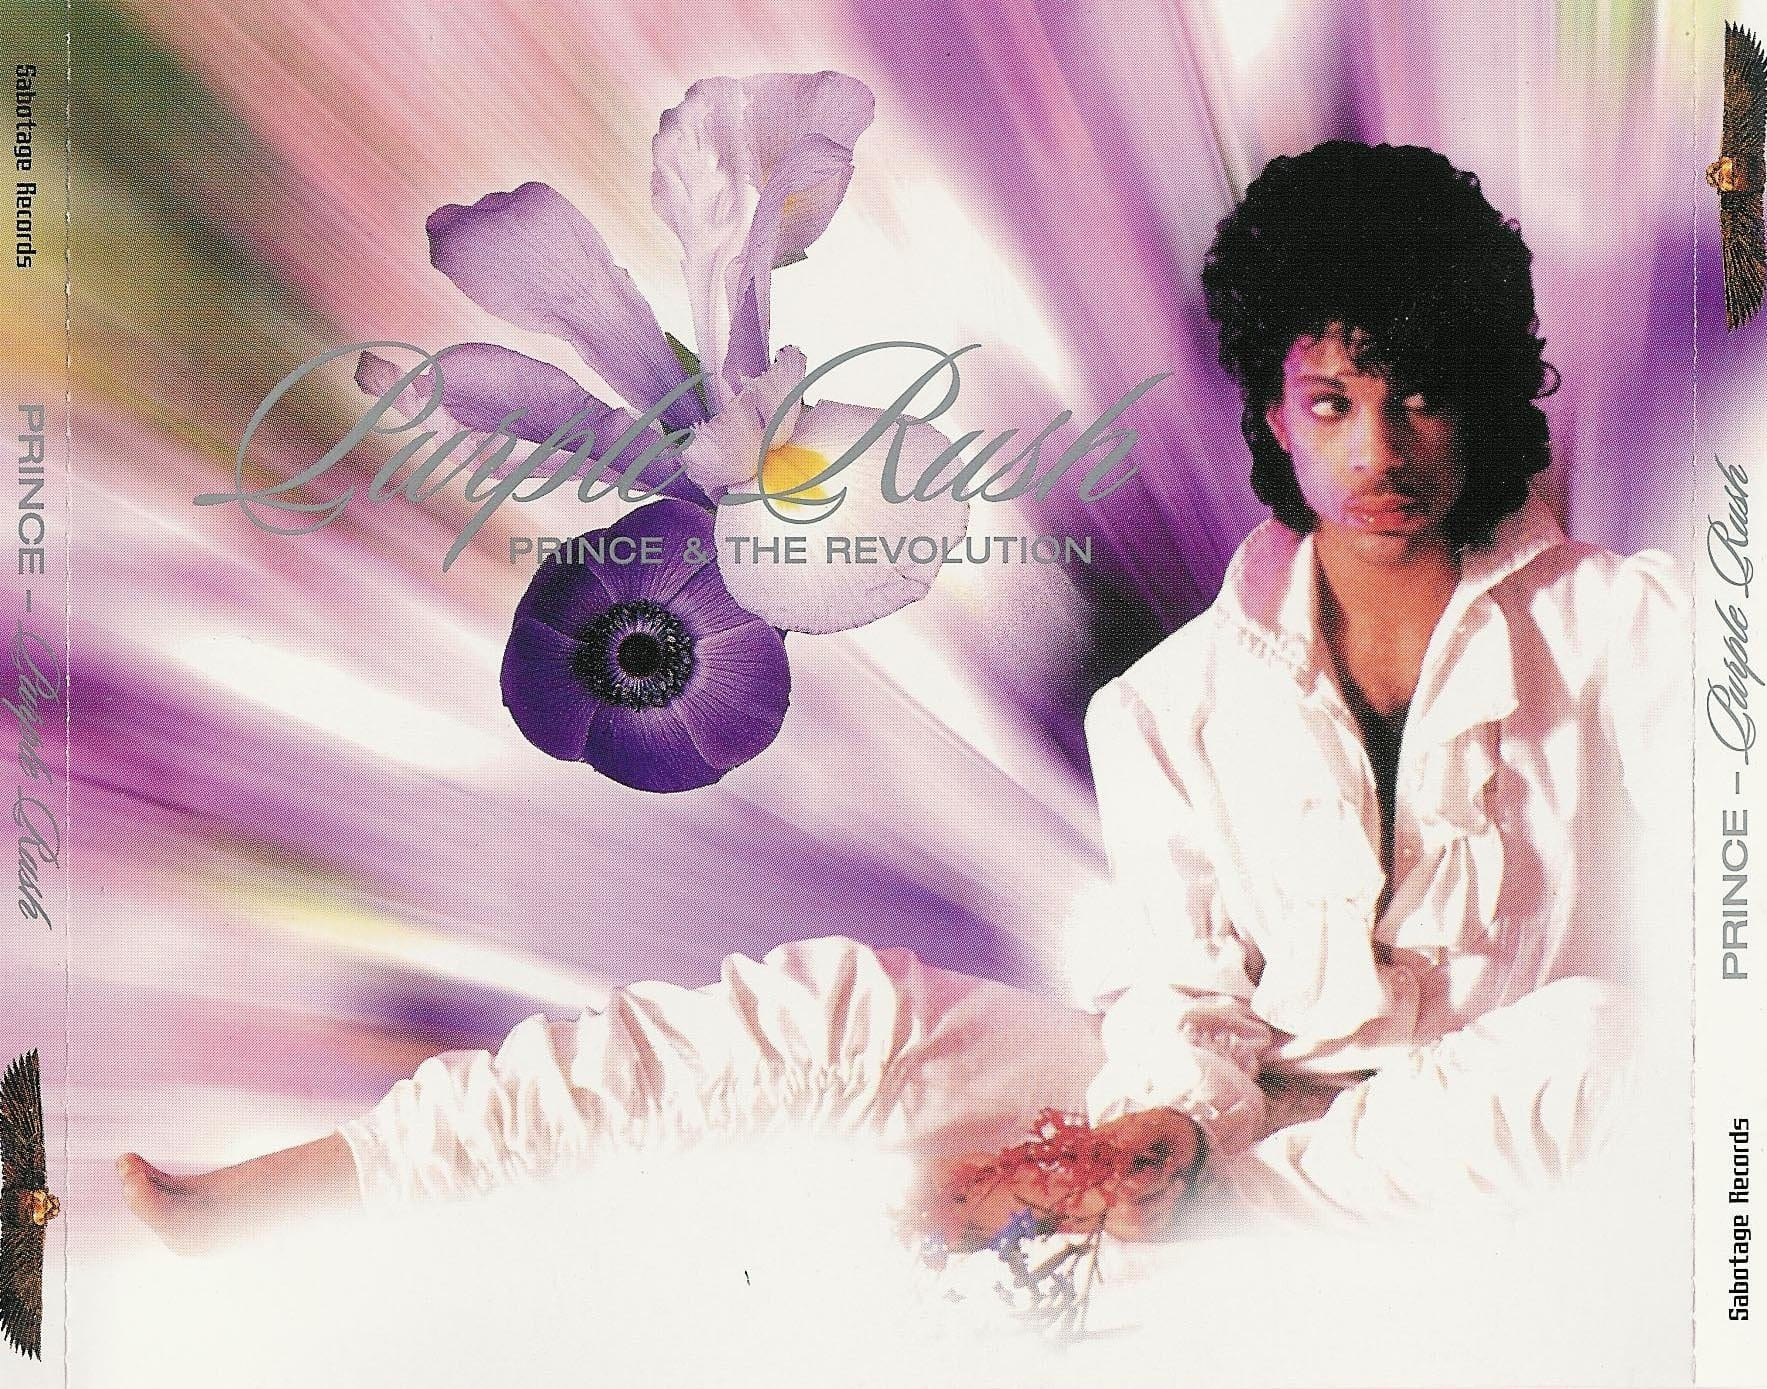 Prince - Purple Rush 6: Let The Good Tapes Roll! (Rehearsals & Concerts 1983-85) 6 CD SET 9